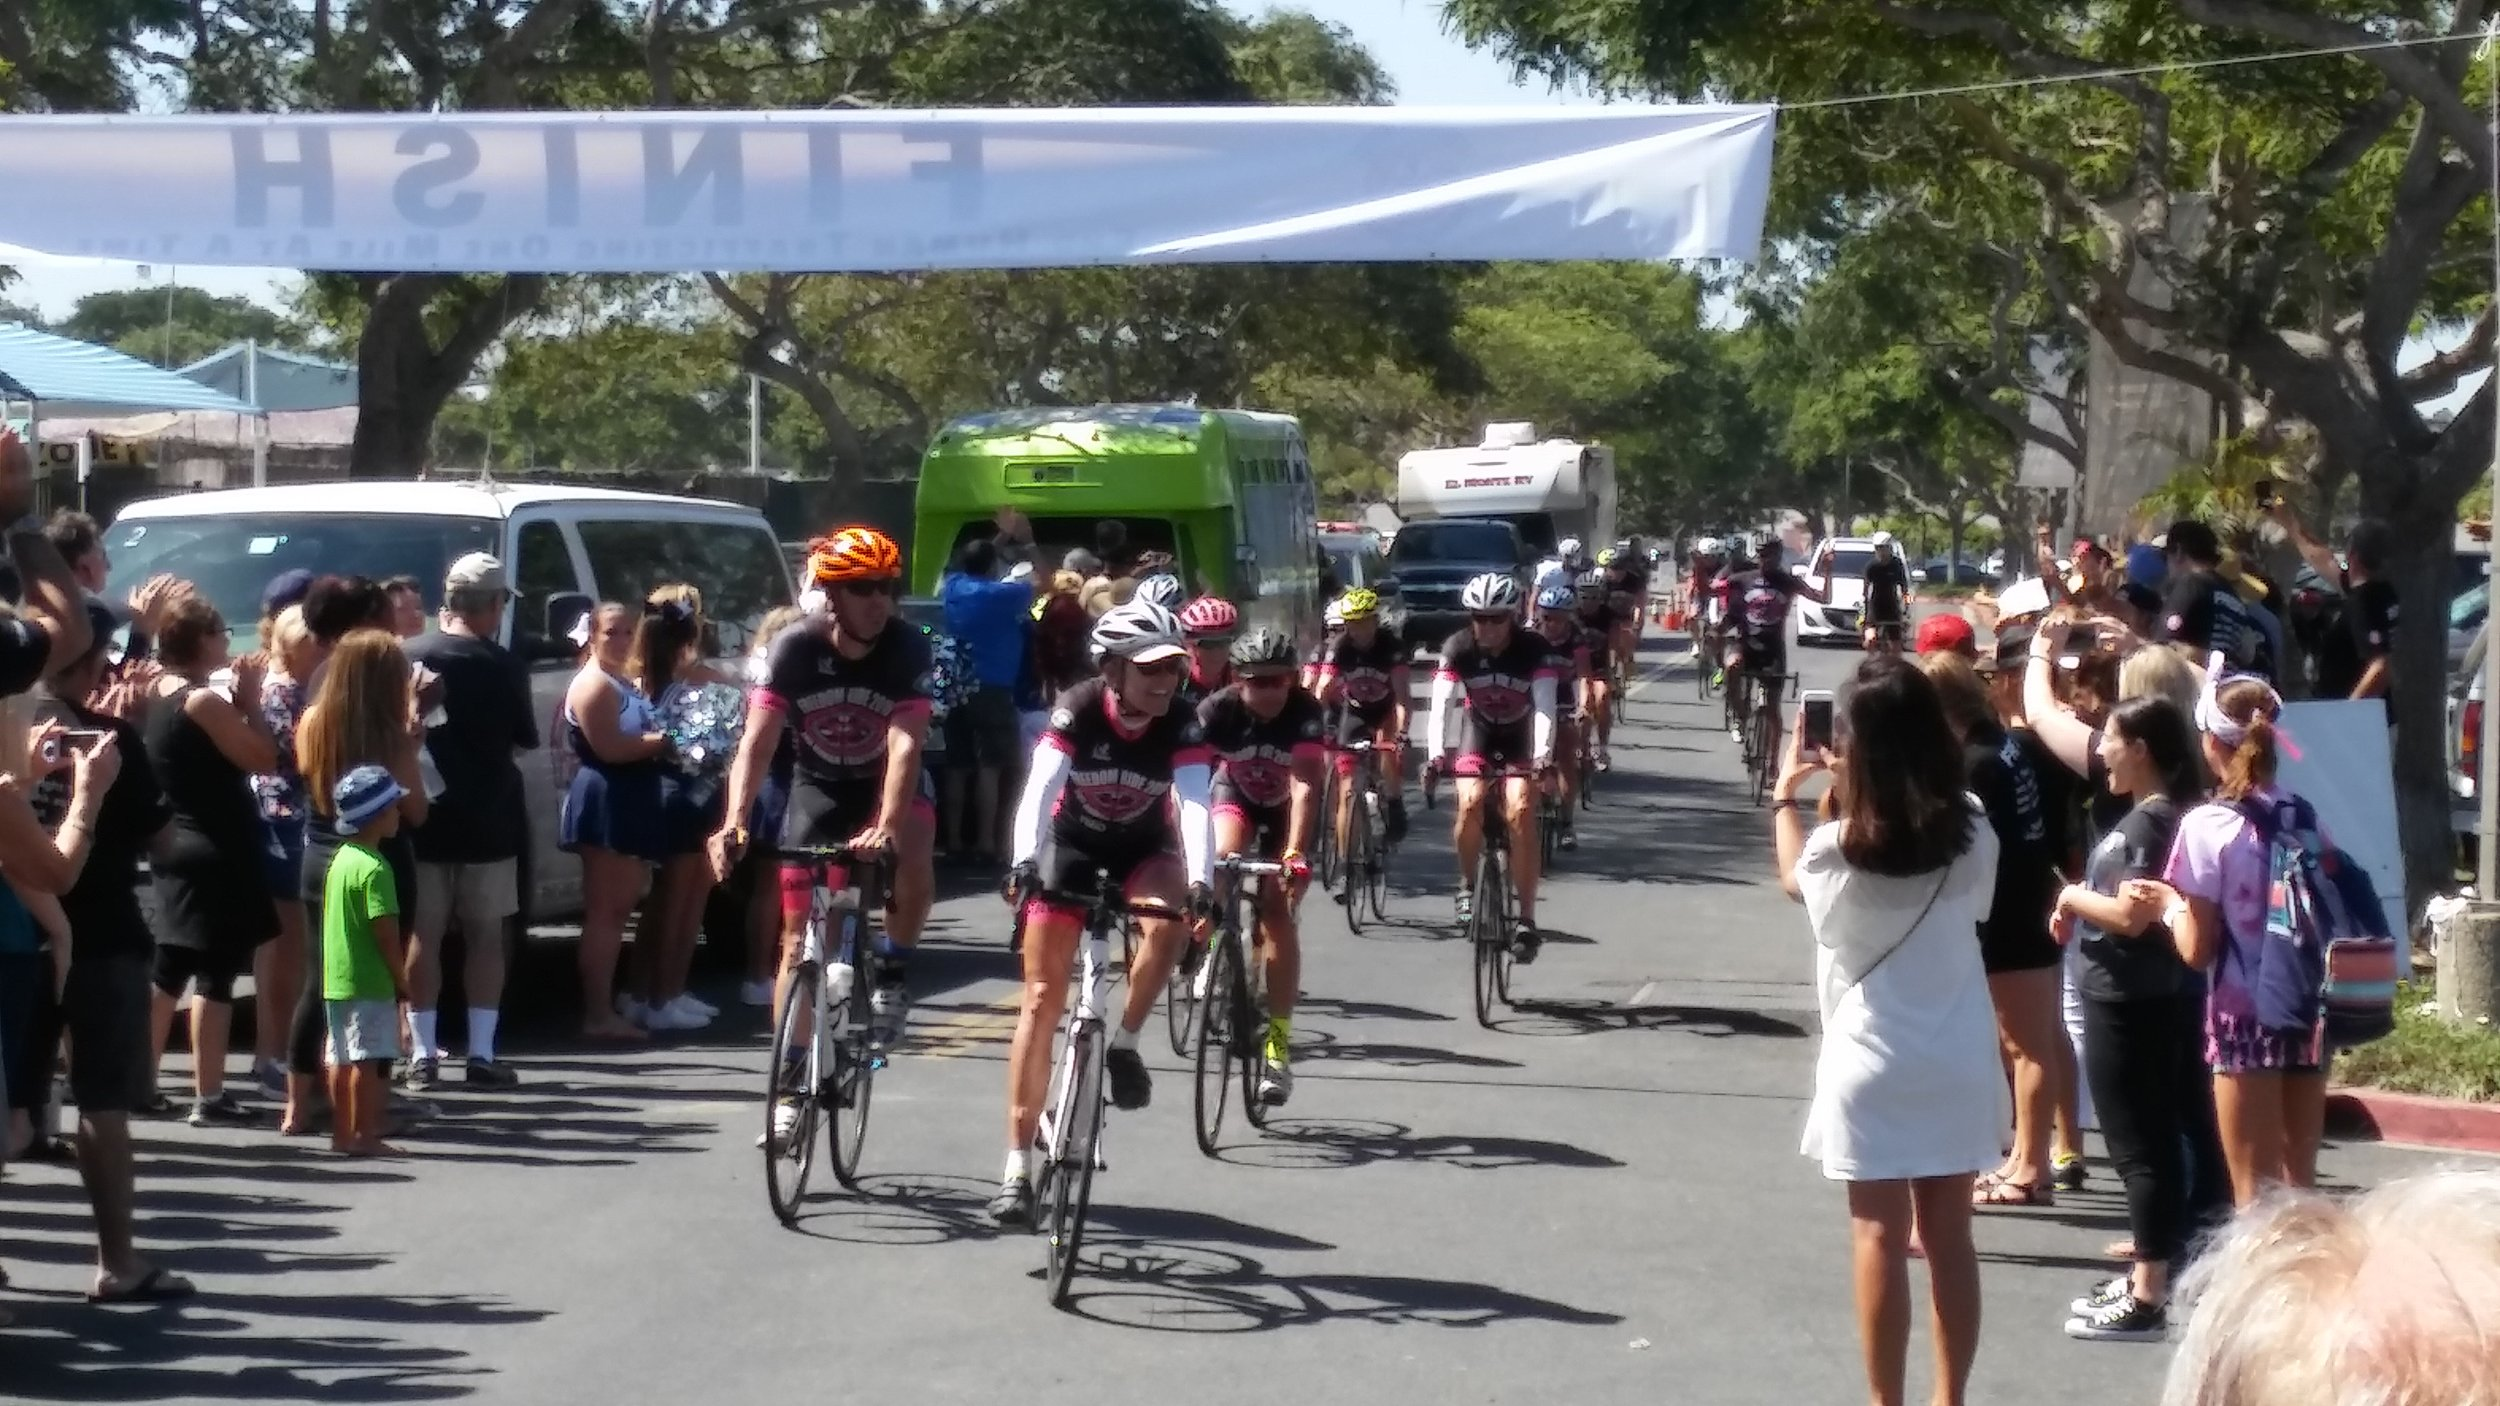 After a 15-day bike ride, the cyclists reach the Freedom Ride finish line.